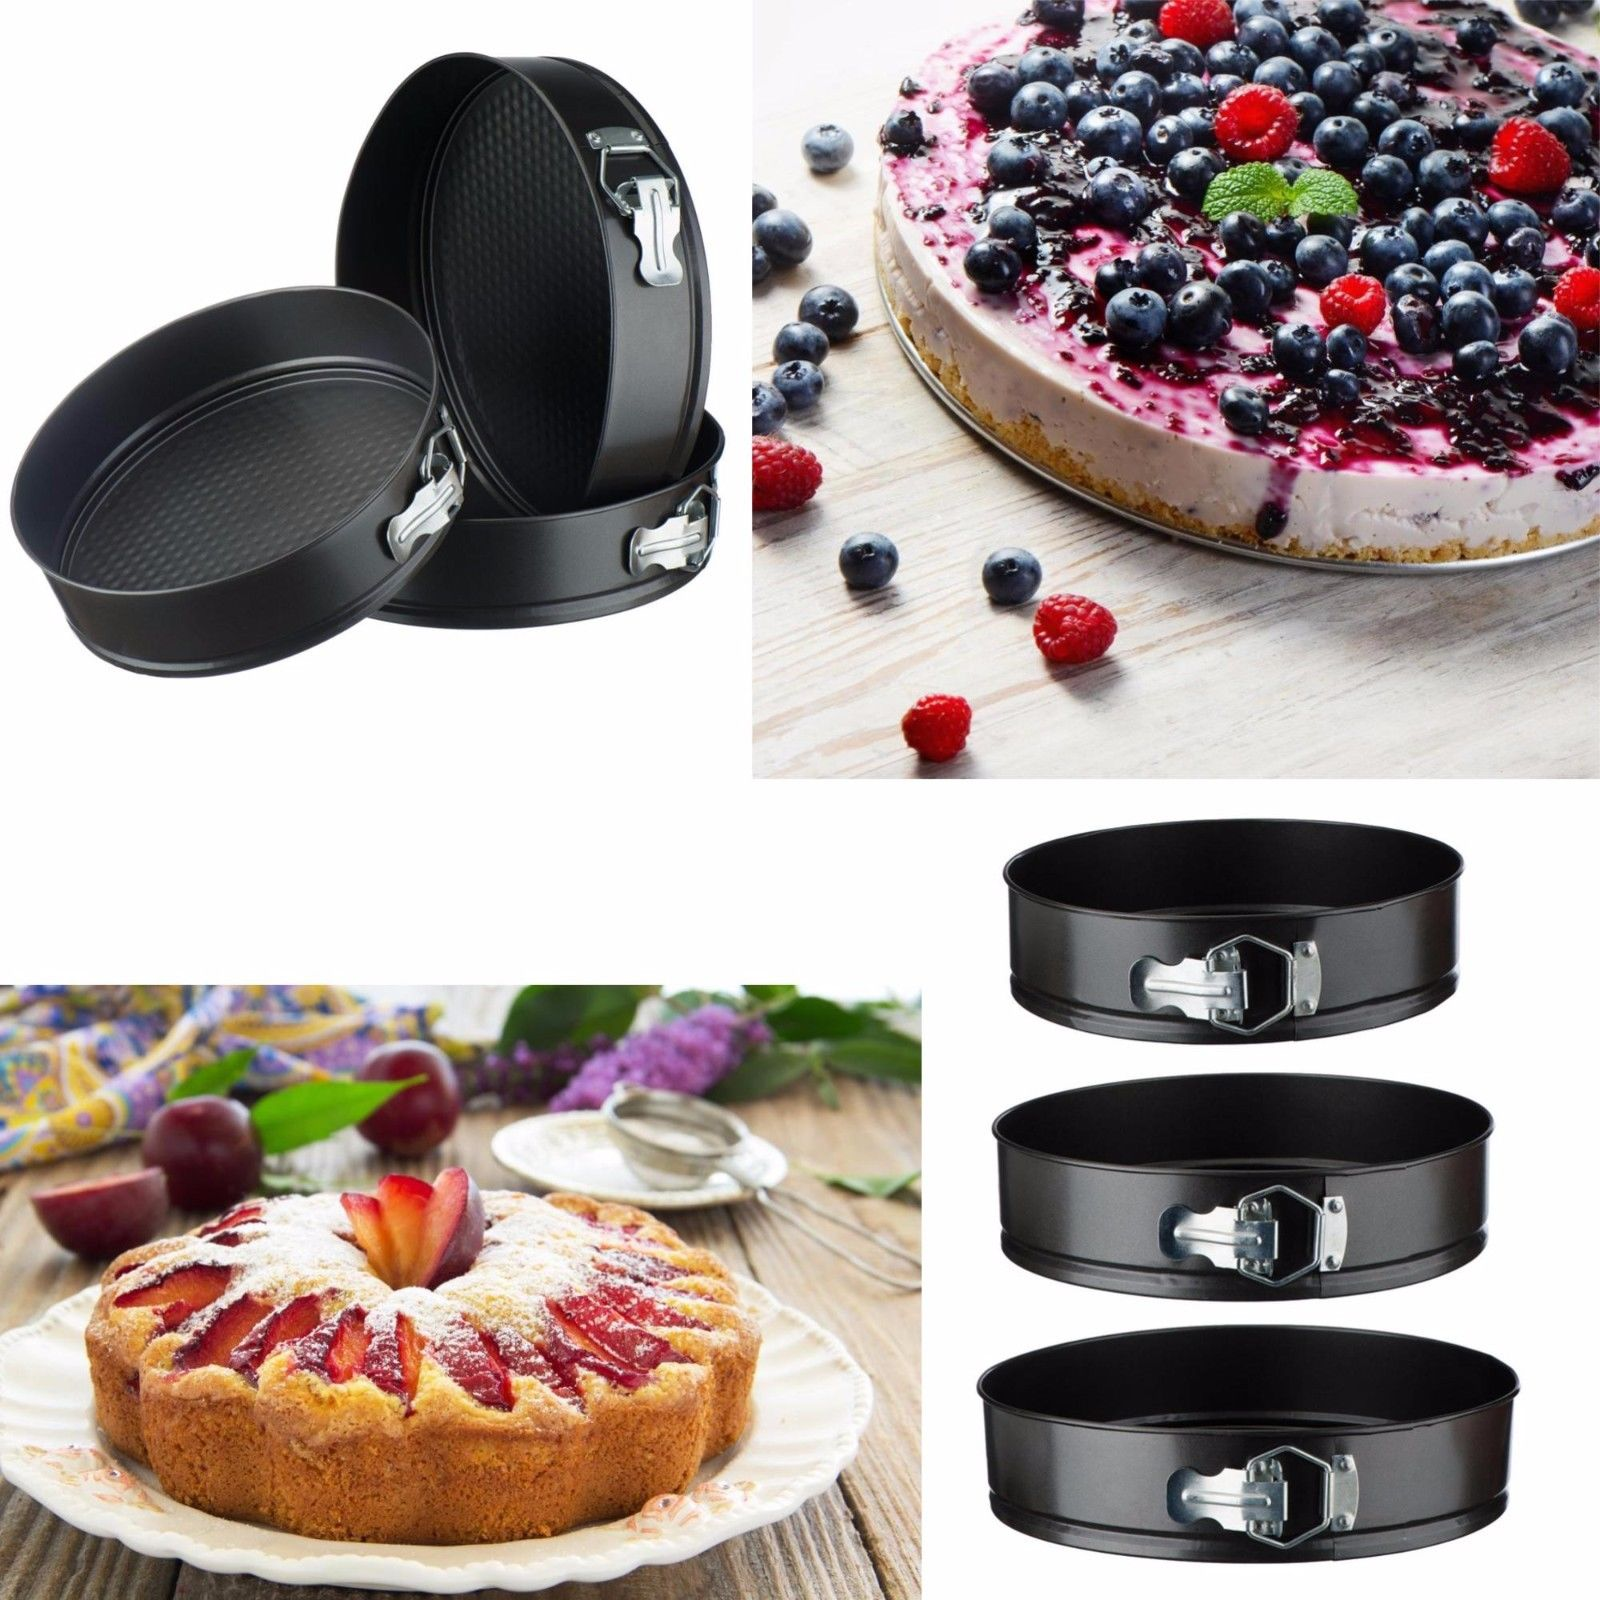 3 pc Round Cake Pan Springform Baking Tins Set Wedding Birthday Bakeware